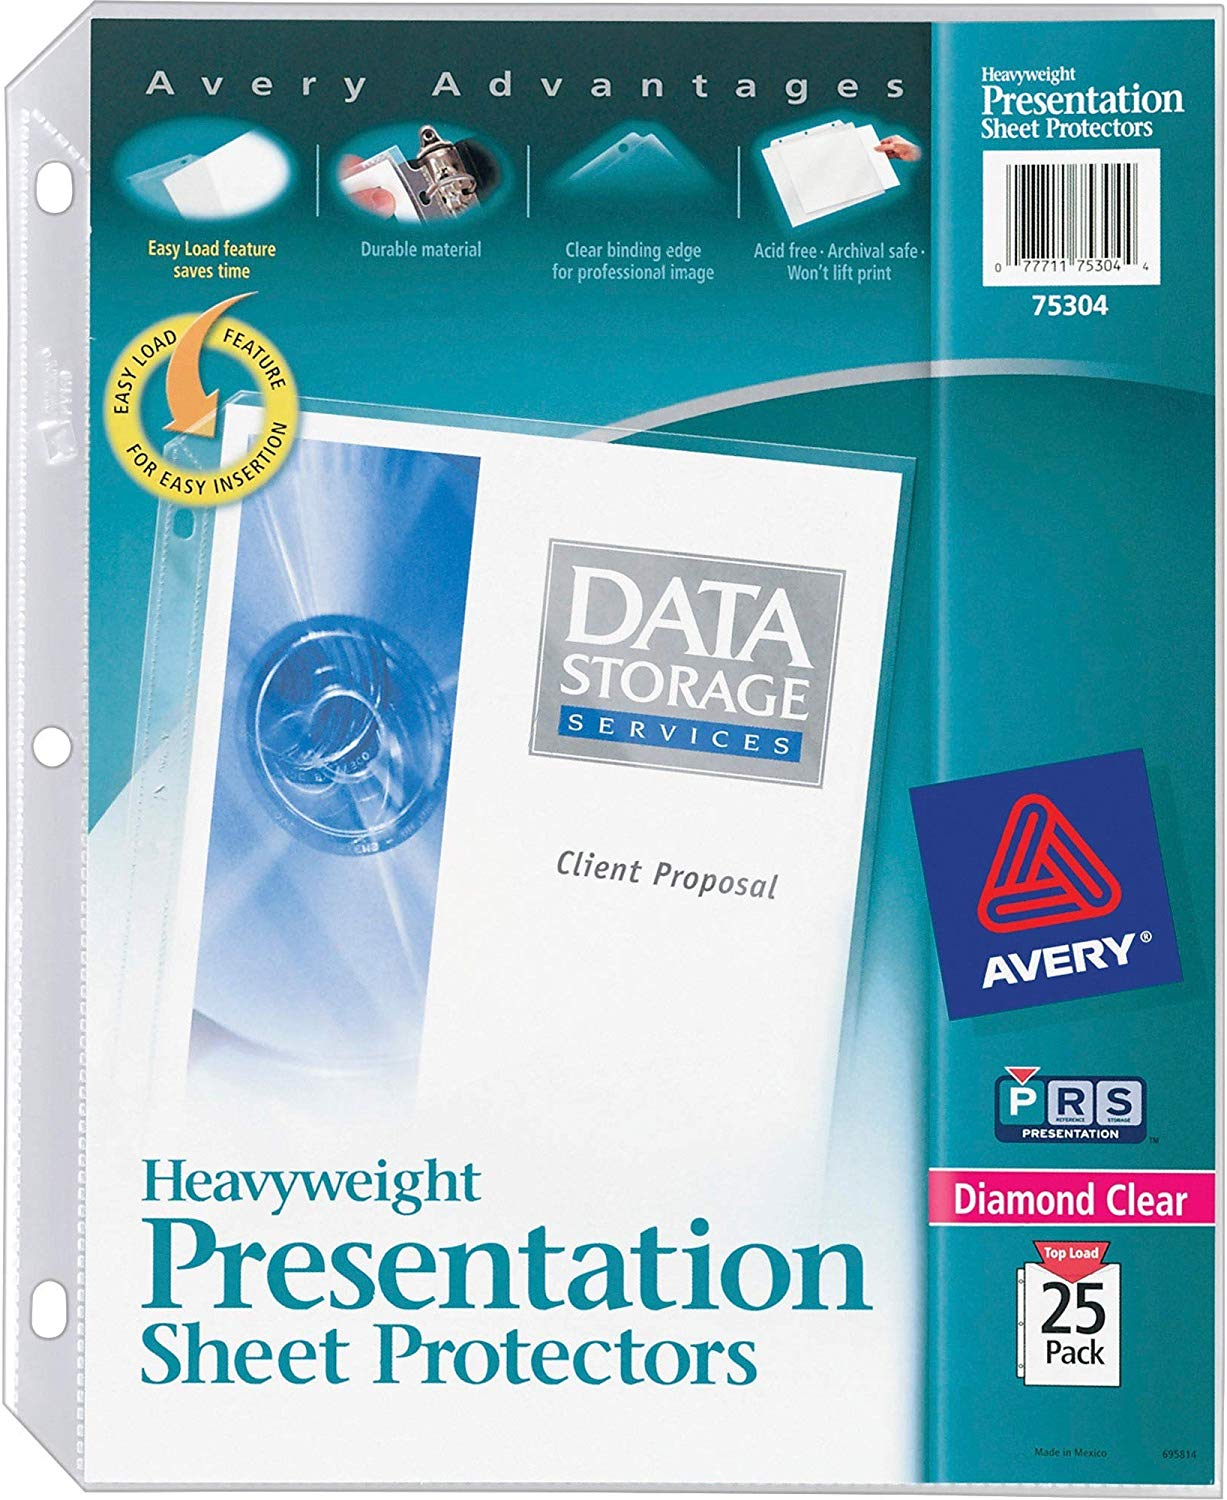 Avery Heavyweight Presentation Sheet Protectors, Pack of 25 (75304)